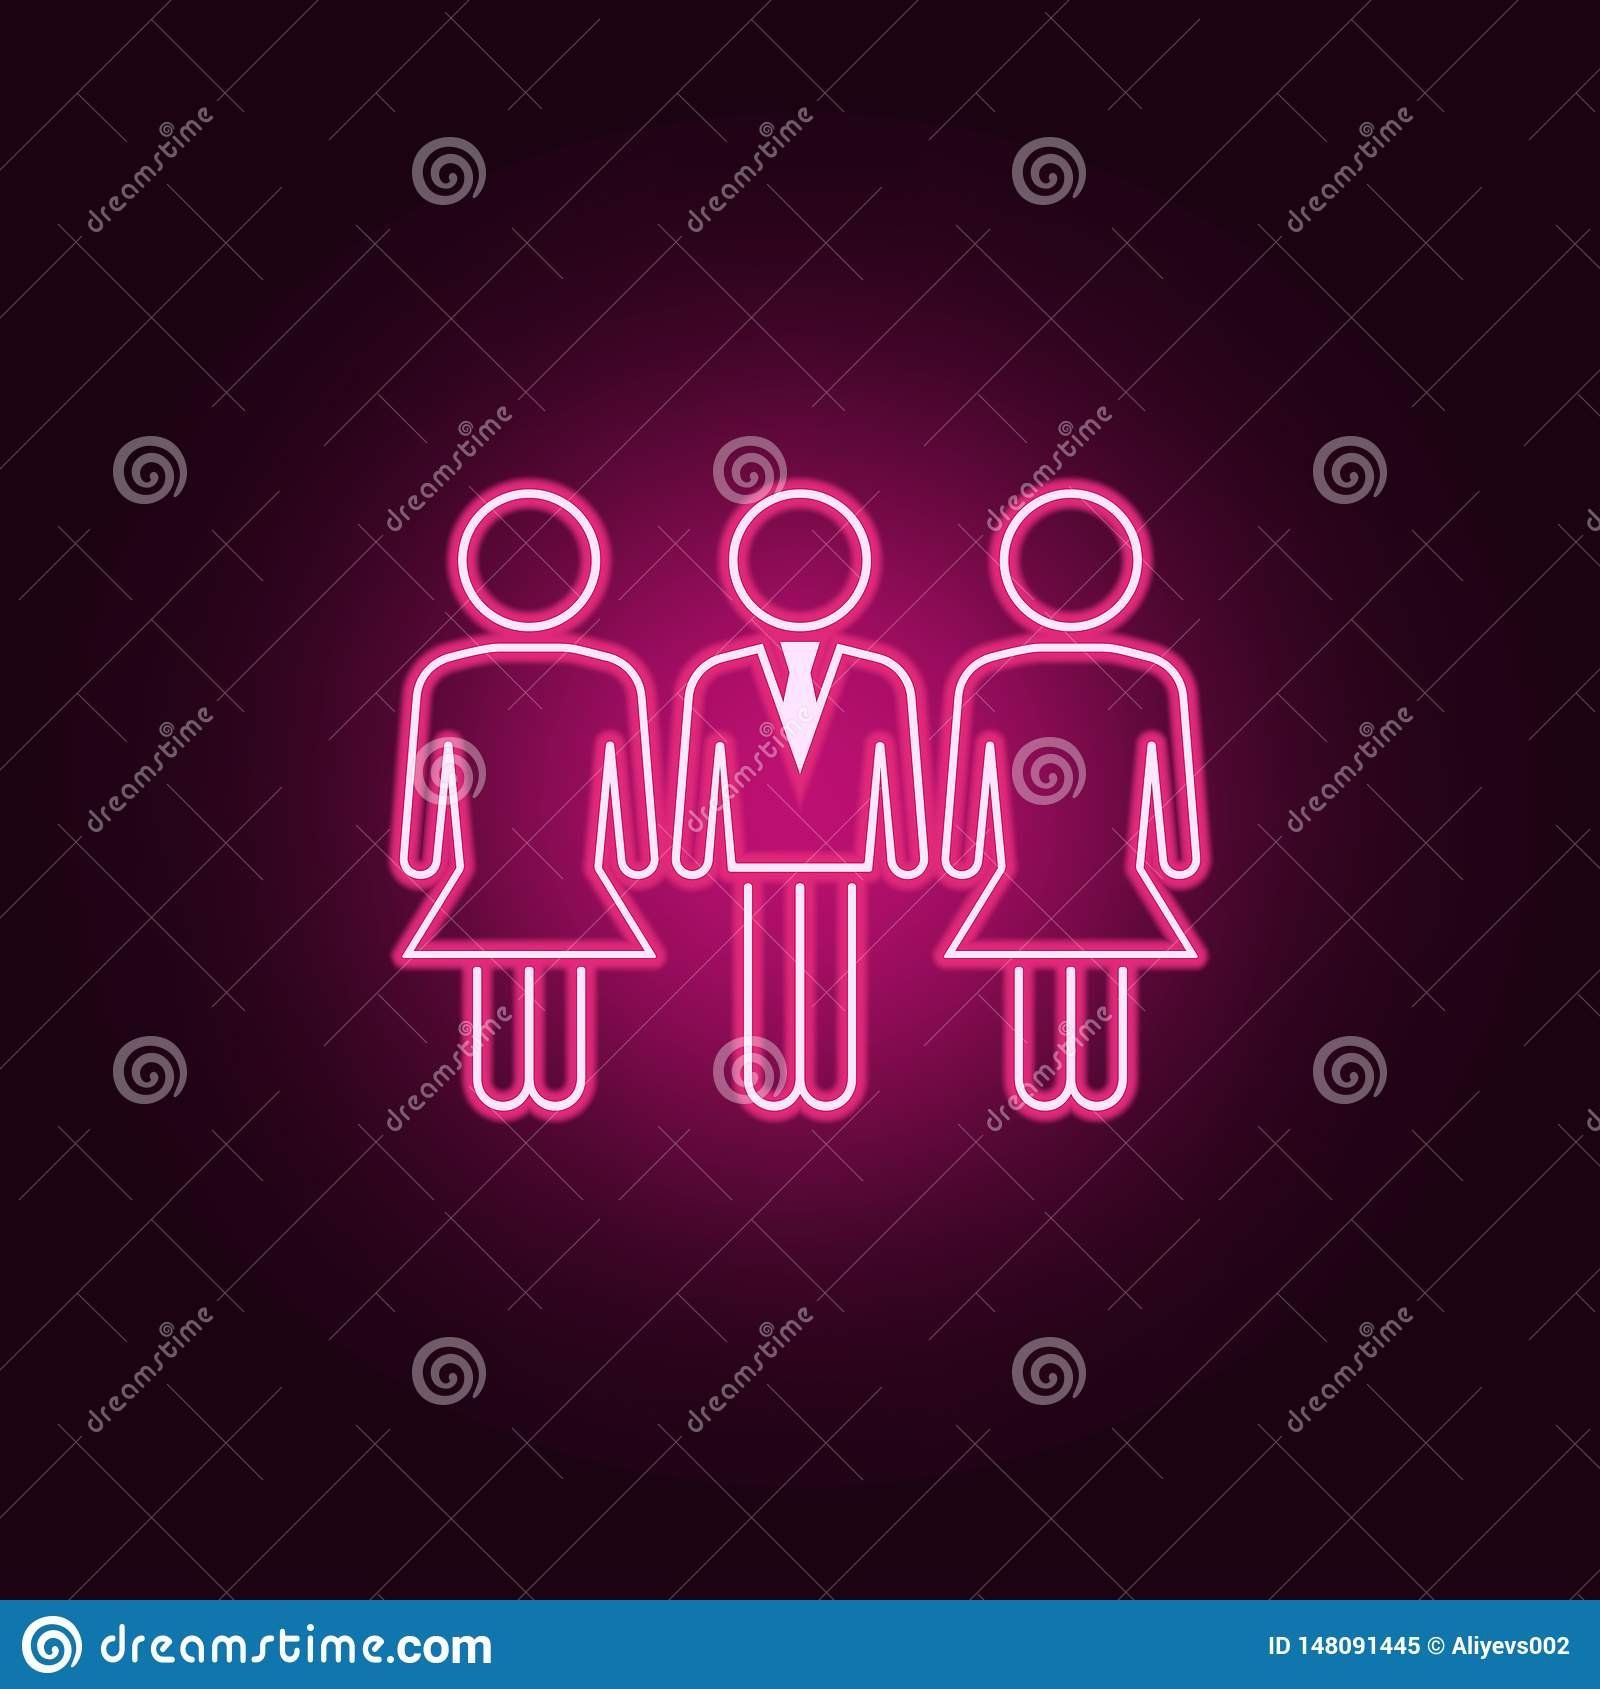 gender equality at workneon icon. Elements of People set. Simple icon for websites, web design, mobile app, info graphics